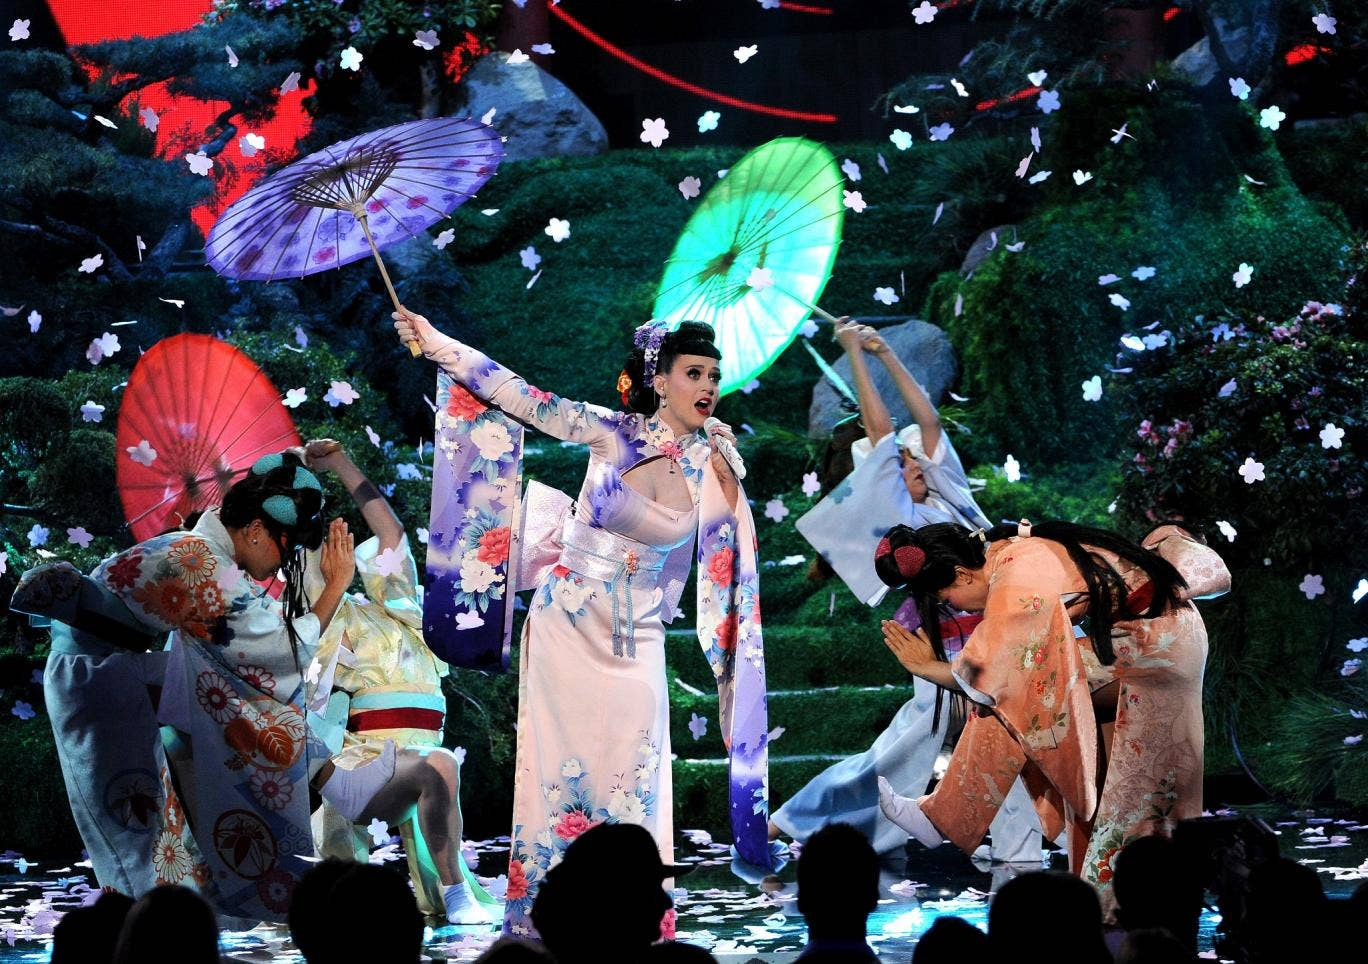 Katy Perry performed in a satin kimono with Geisha girls for back-up dancers